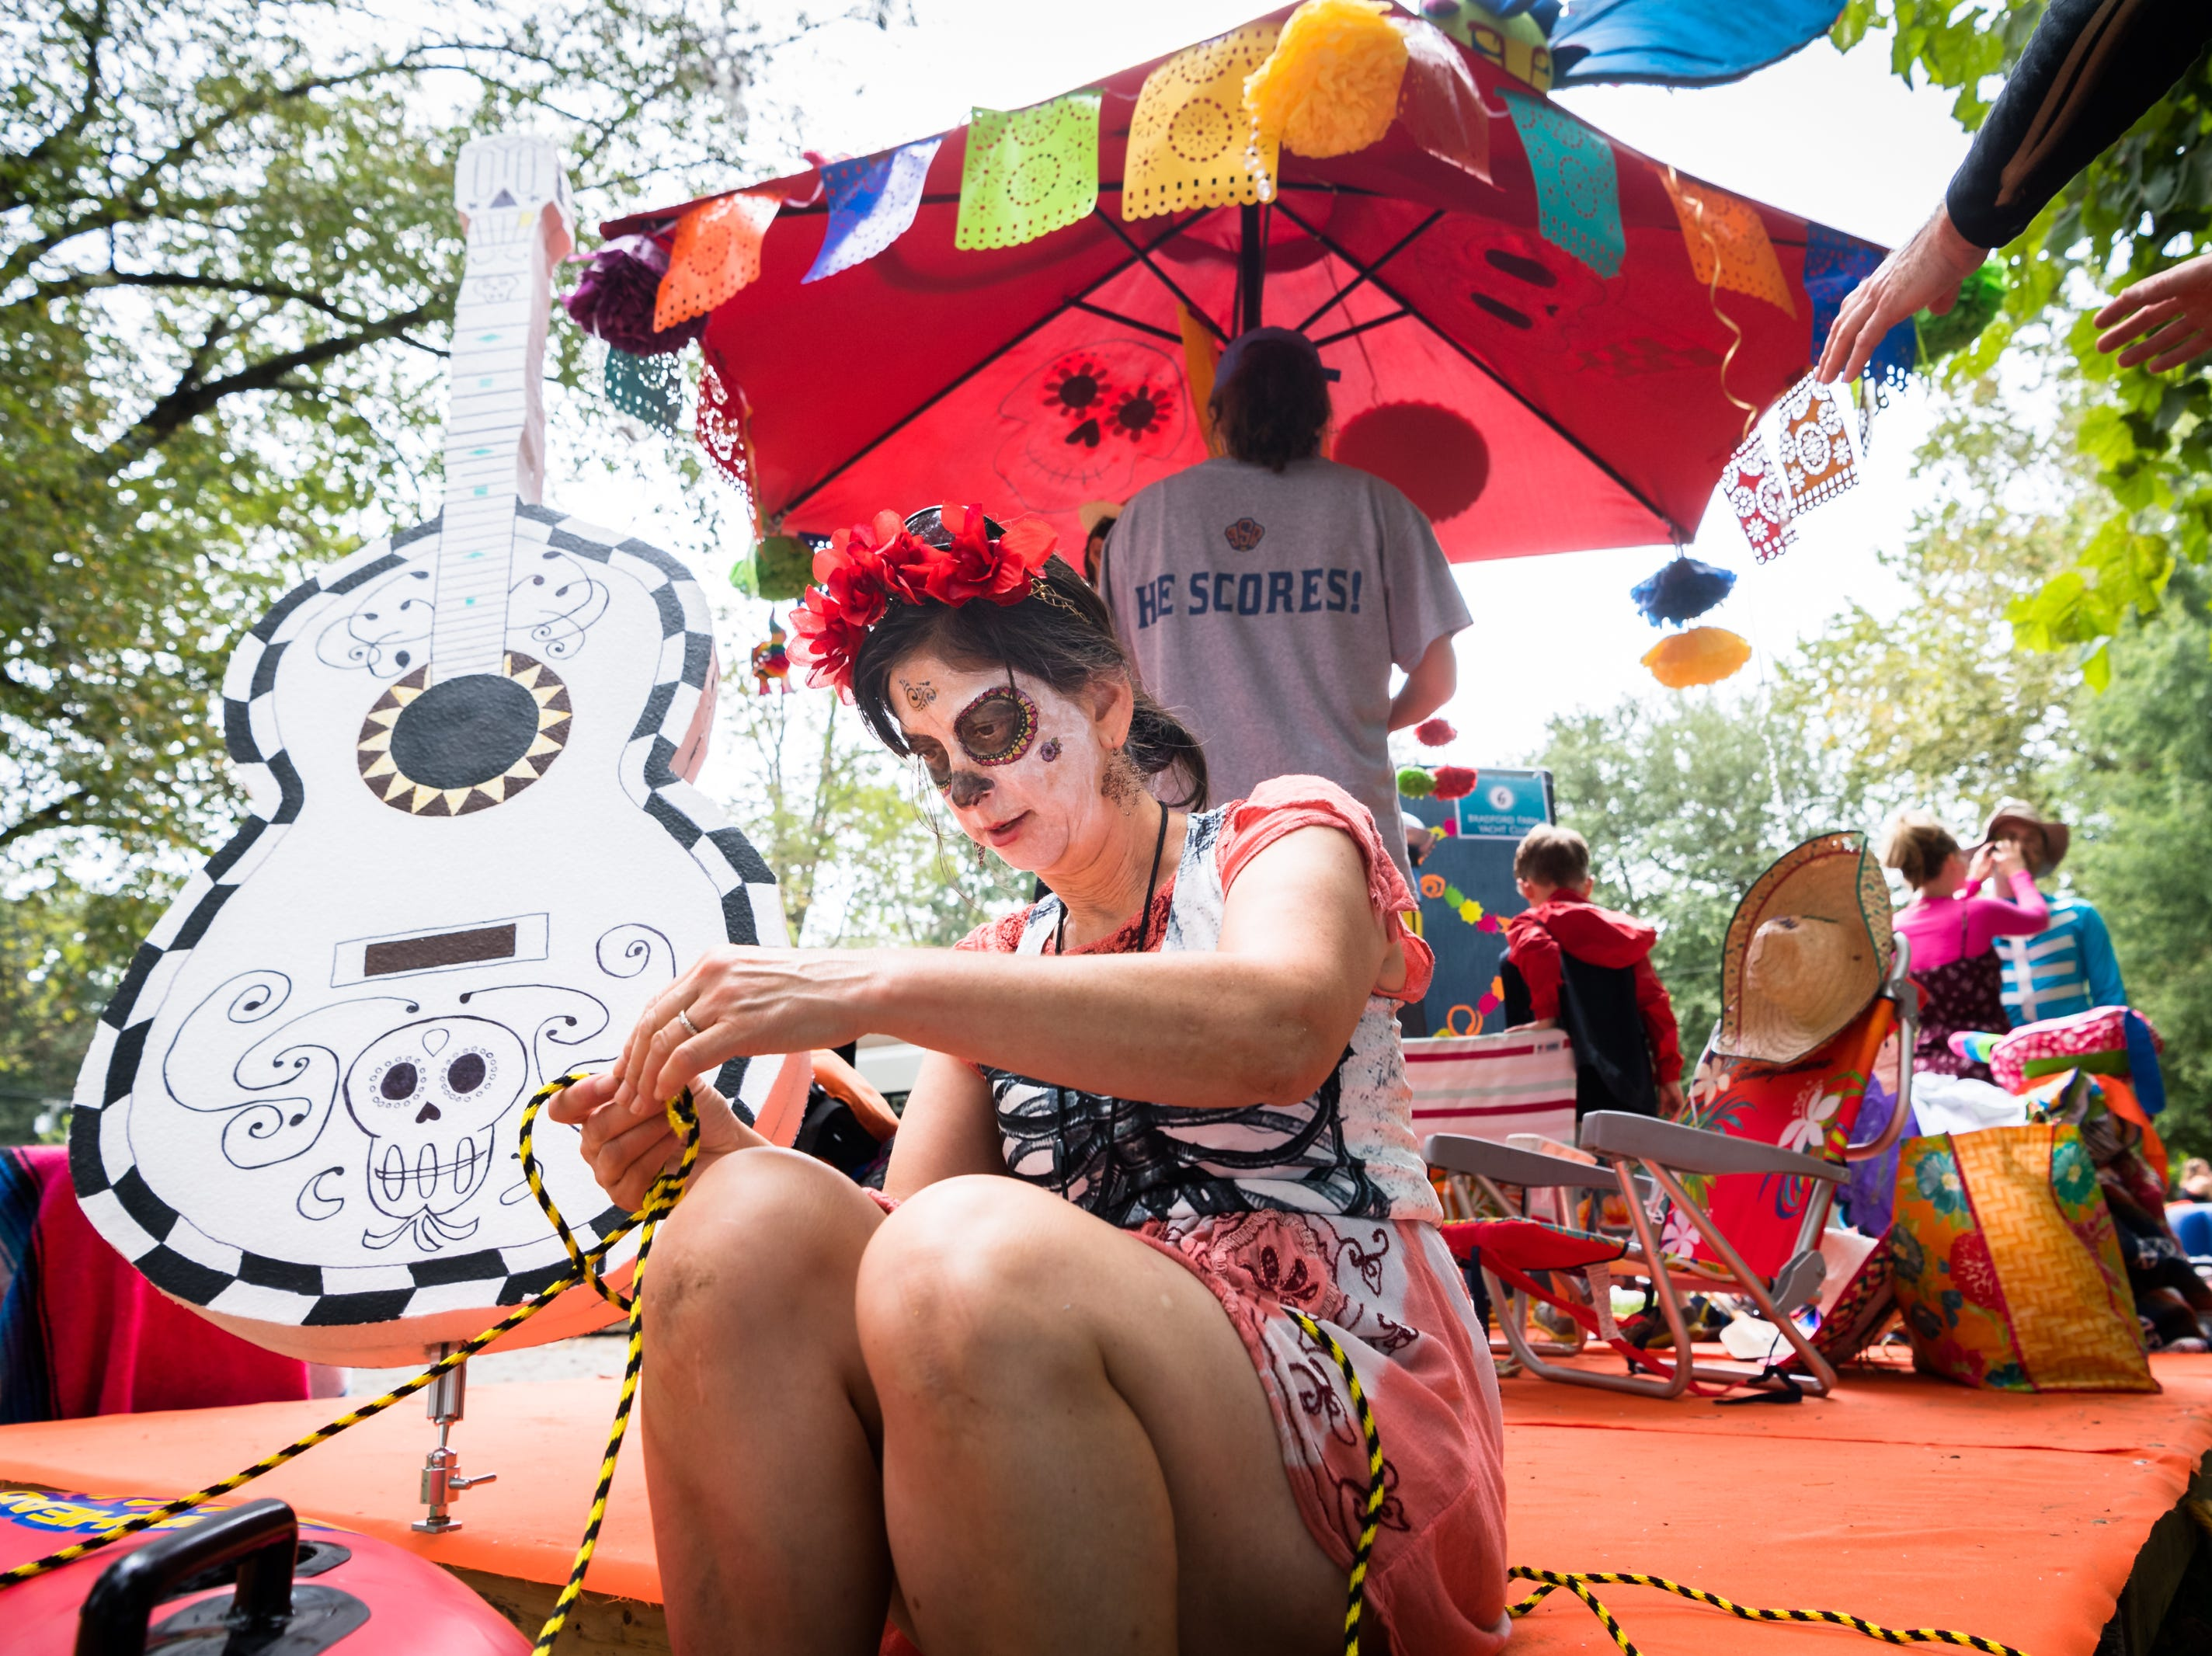 Susie Andrews of the Bradford Farm Yacht Club Anything that Floats team, helps in assembling their float before putting in to the French Broad River at Hominy Creek River Park, Saturday, August 18, 2018. The theme of the team's float was a Day of the Dead scene from the Disney movie Coco. The parade ended at New Belgium Brewery where RiverLink's RiverFest took place.